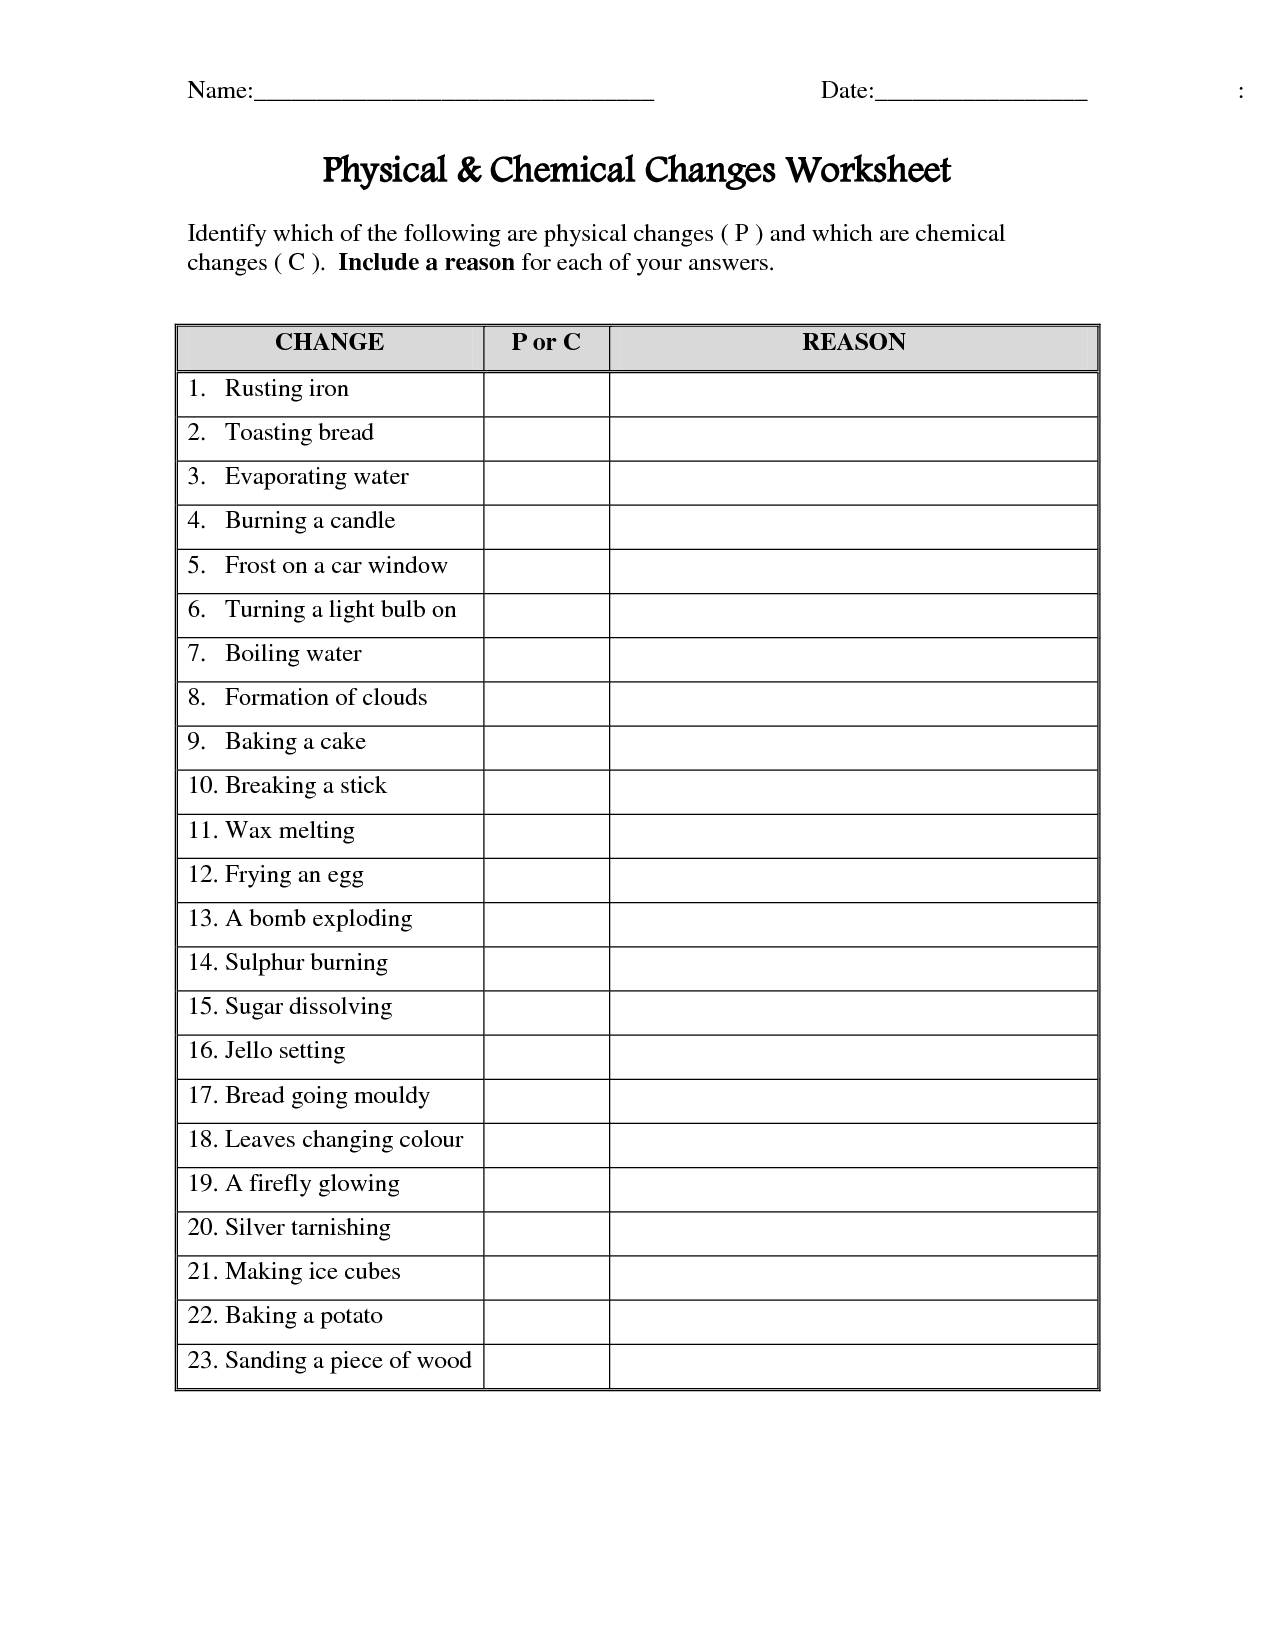 Physical or Chemical Change Worksheet   Lostranquillos moreover Report Questions  E2 Elimination furthermore Physical Vs Chemical Changes Worksheet Answers Physical And Chemical additionally  likewise √ Physical Chemical Change Worksheet likewise Physical Vs Chemical Changes Worksheet Answers Cover Image Physical likewise Properties Of Matter Worksheets Grade 5 Related Image Physical also Physical And Chemical Properties And Changes Worksheet   Free additionally  together with Physical Chemical Properties Changes Worksheet   Siteraven additionally  additionally 8th grade chemistry worksheets – reynoldbot together with Chemical Change Printables  perfect clification of chemical besides 41 Best Of Physical Vs Chemical Changes Worksheet also Physical and chemical changes chatterbox  fortune teller by as well Chemistry 1 Worksheet Clification Of Matter and Changes Answer. on physical or chemical change worksheet